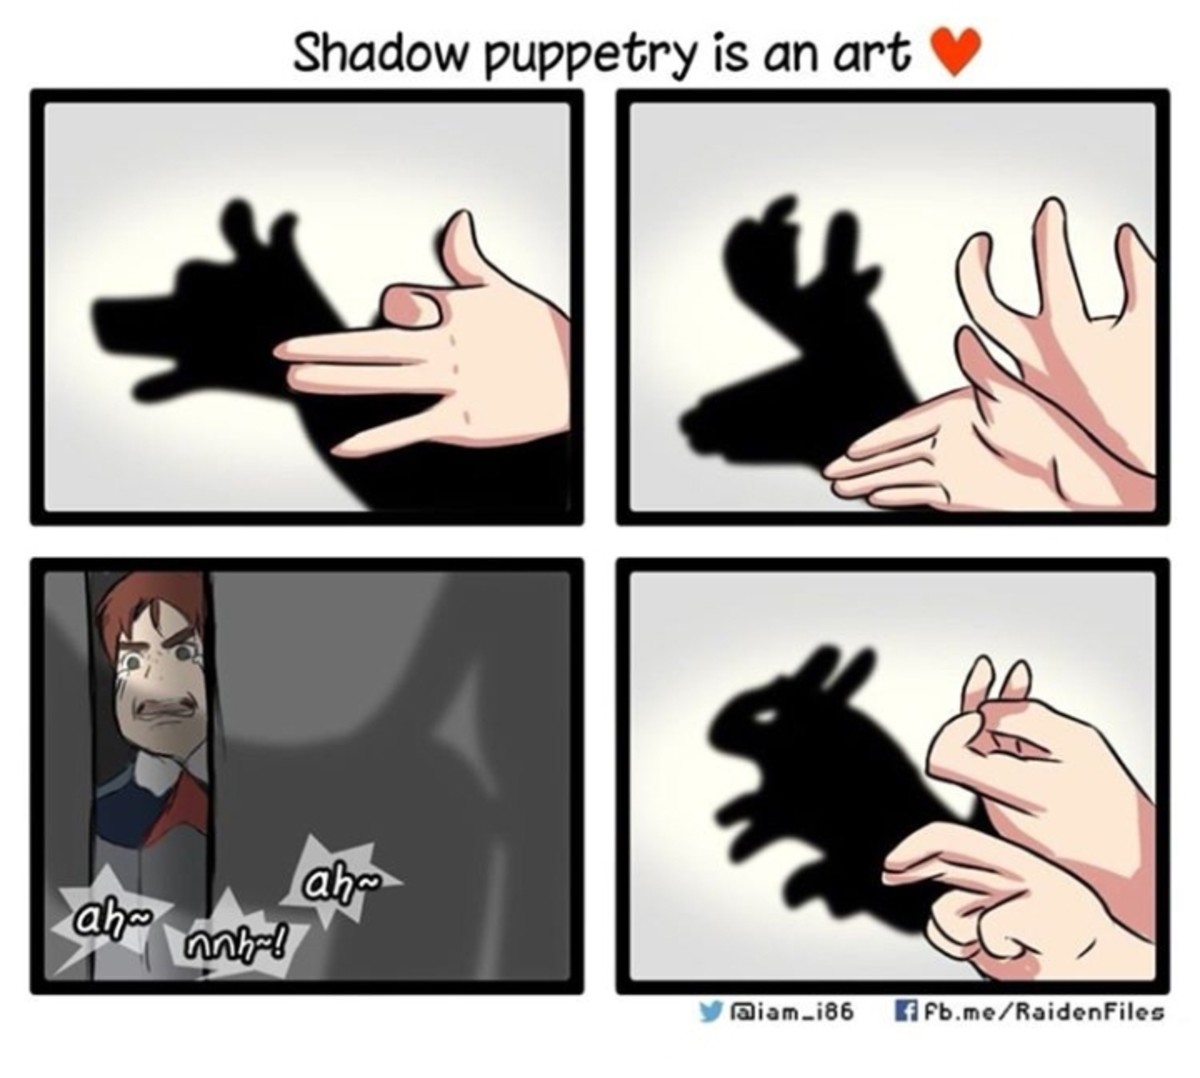 frail psychotic omniscient Tapir. . Shadow puppetry is an art Alla?. fingers shouldn't bend like this